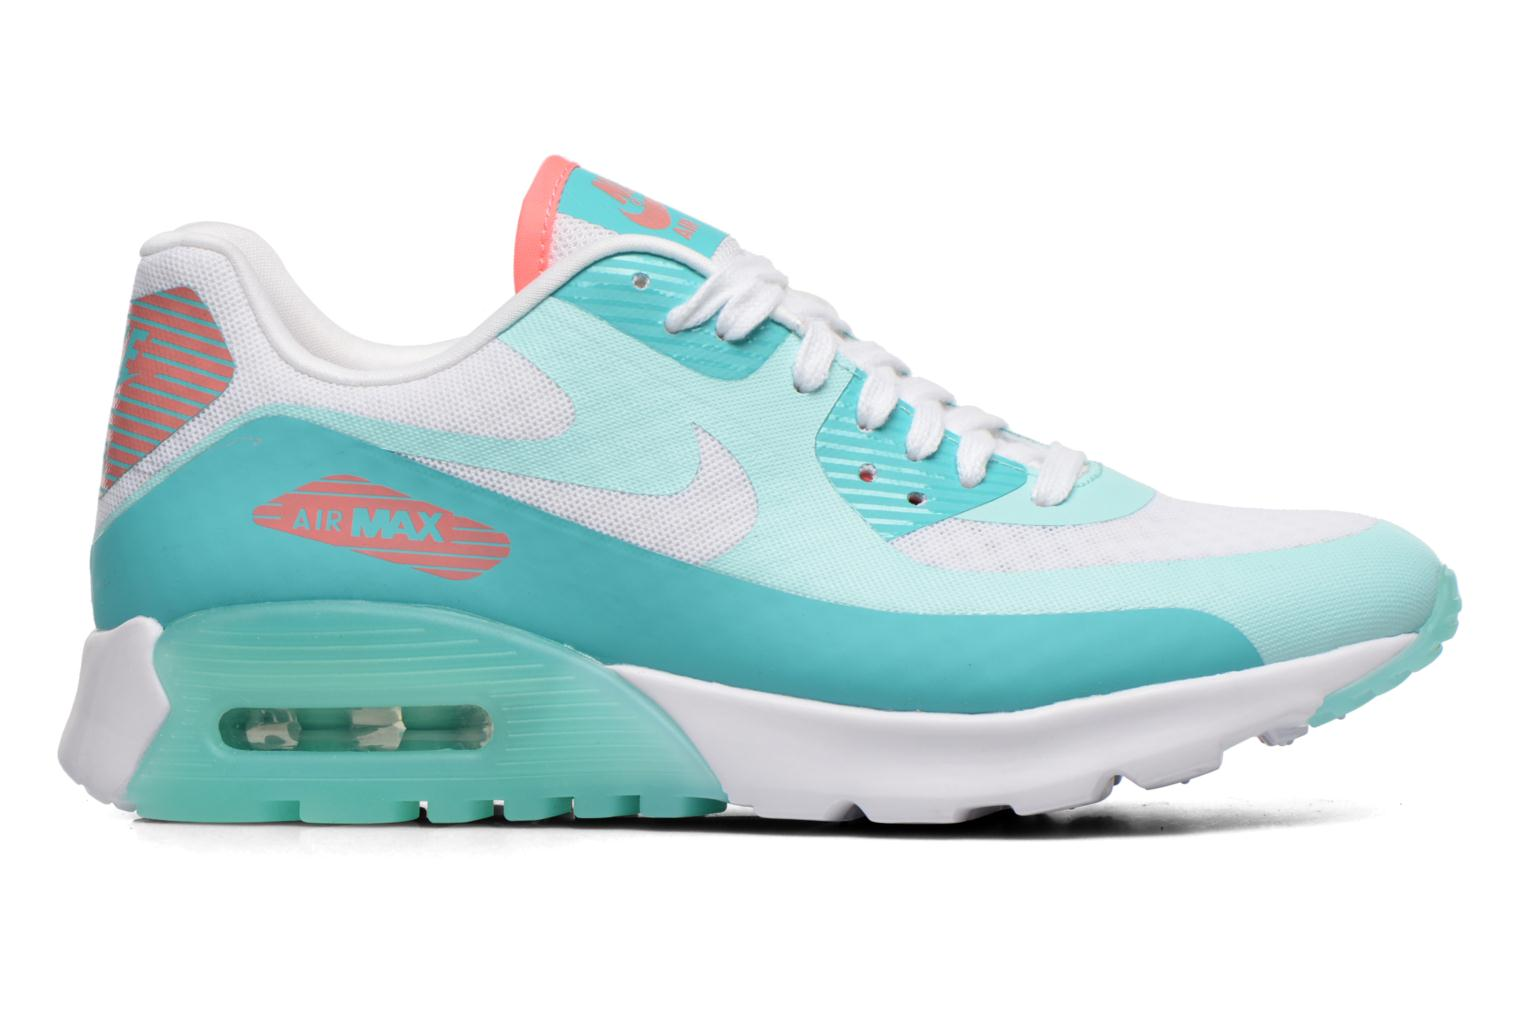 W Air Max 90 Ultra Br White/White-Lt Retro-Lava Glow